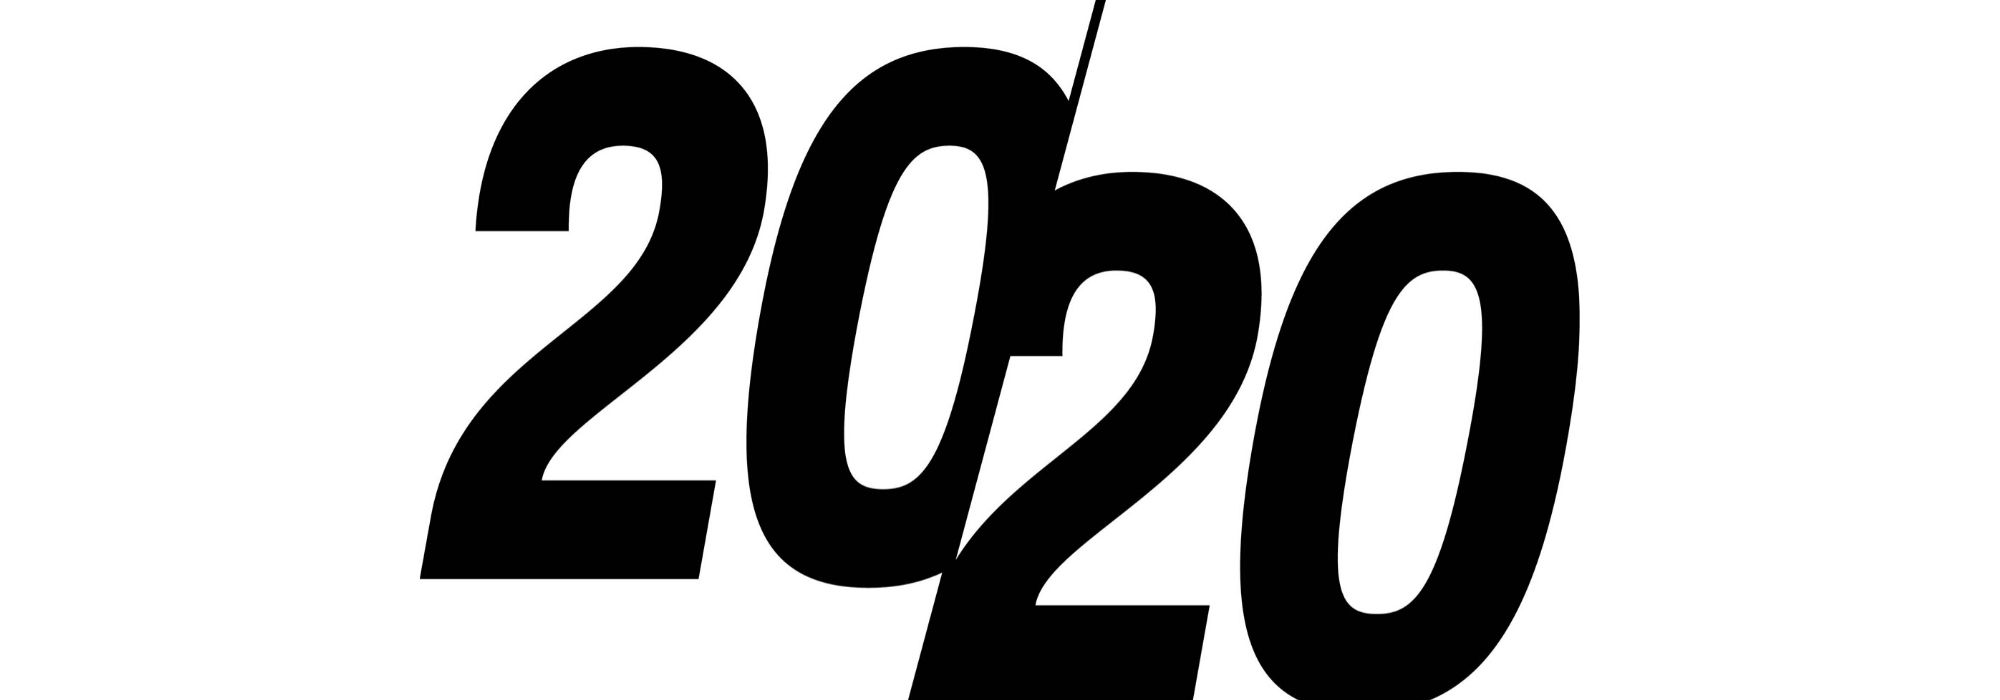 Mind the Gap: 5 Blindspots in Your 2020 Vision